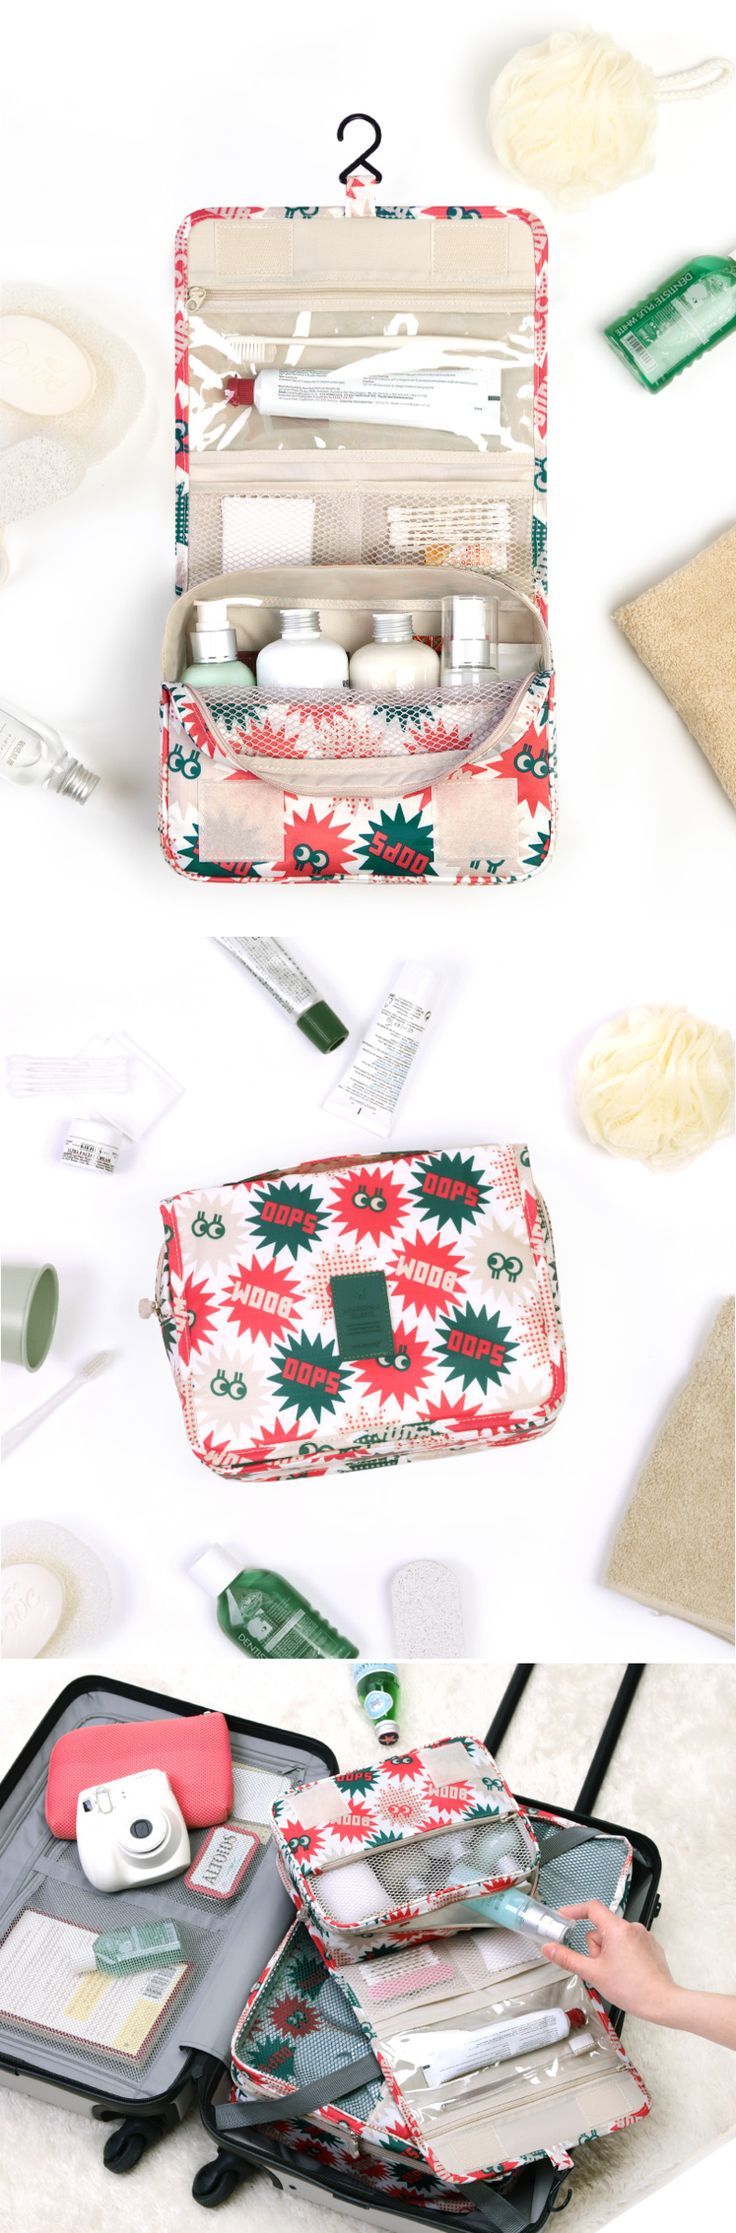 This pouch packs a punch! It fits easily into your luggage & unfolds into an awesome hanging toiletry organizer! With 9 useful pockets, this is your one-stop pouch to keep your essentials together. Keep wet products such as your toothbrush & toothpaste in the PVC pocket & small items like cotton swabs in the mesh pockets. The main compartment can fit large toiletries or cosmetics. Pack & travel stress-free with this cute pouch! It also makes a great organizer for makeup, baby, or craft…